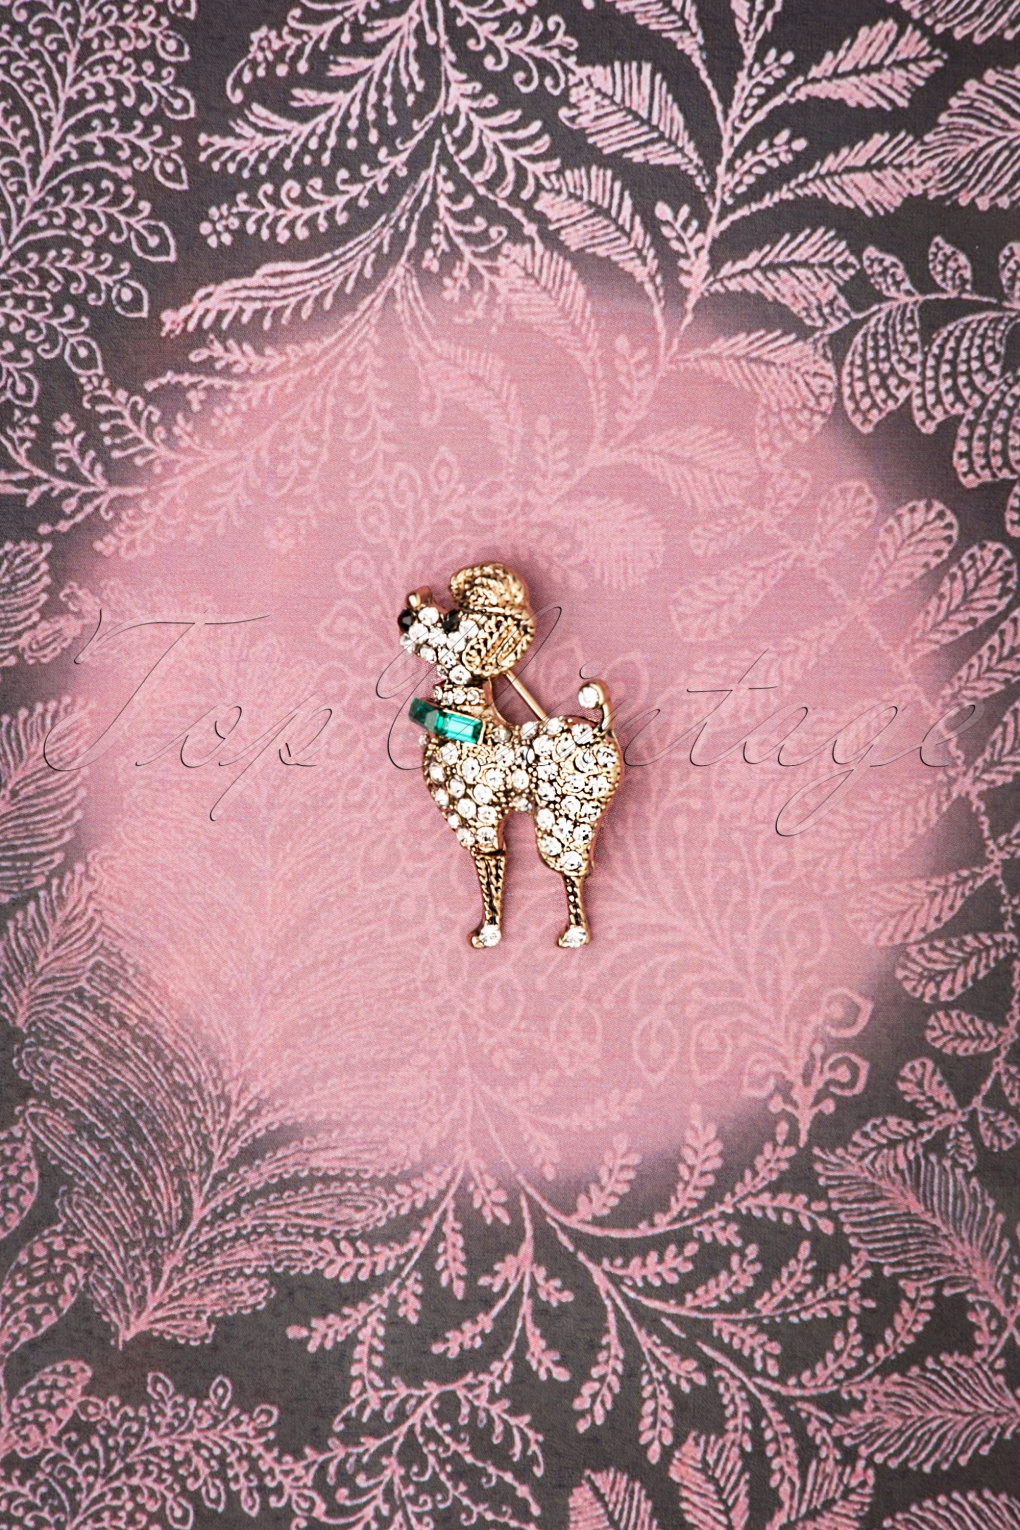 50s Jewelry: Earrings, Necklace, Brooch, Bracelet 50s Small Poodle Brooch in Gold £15.65 AT vintagedancer.com